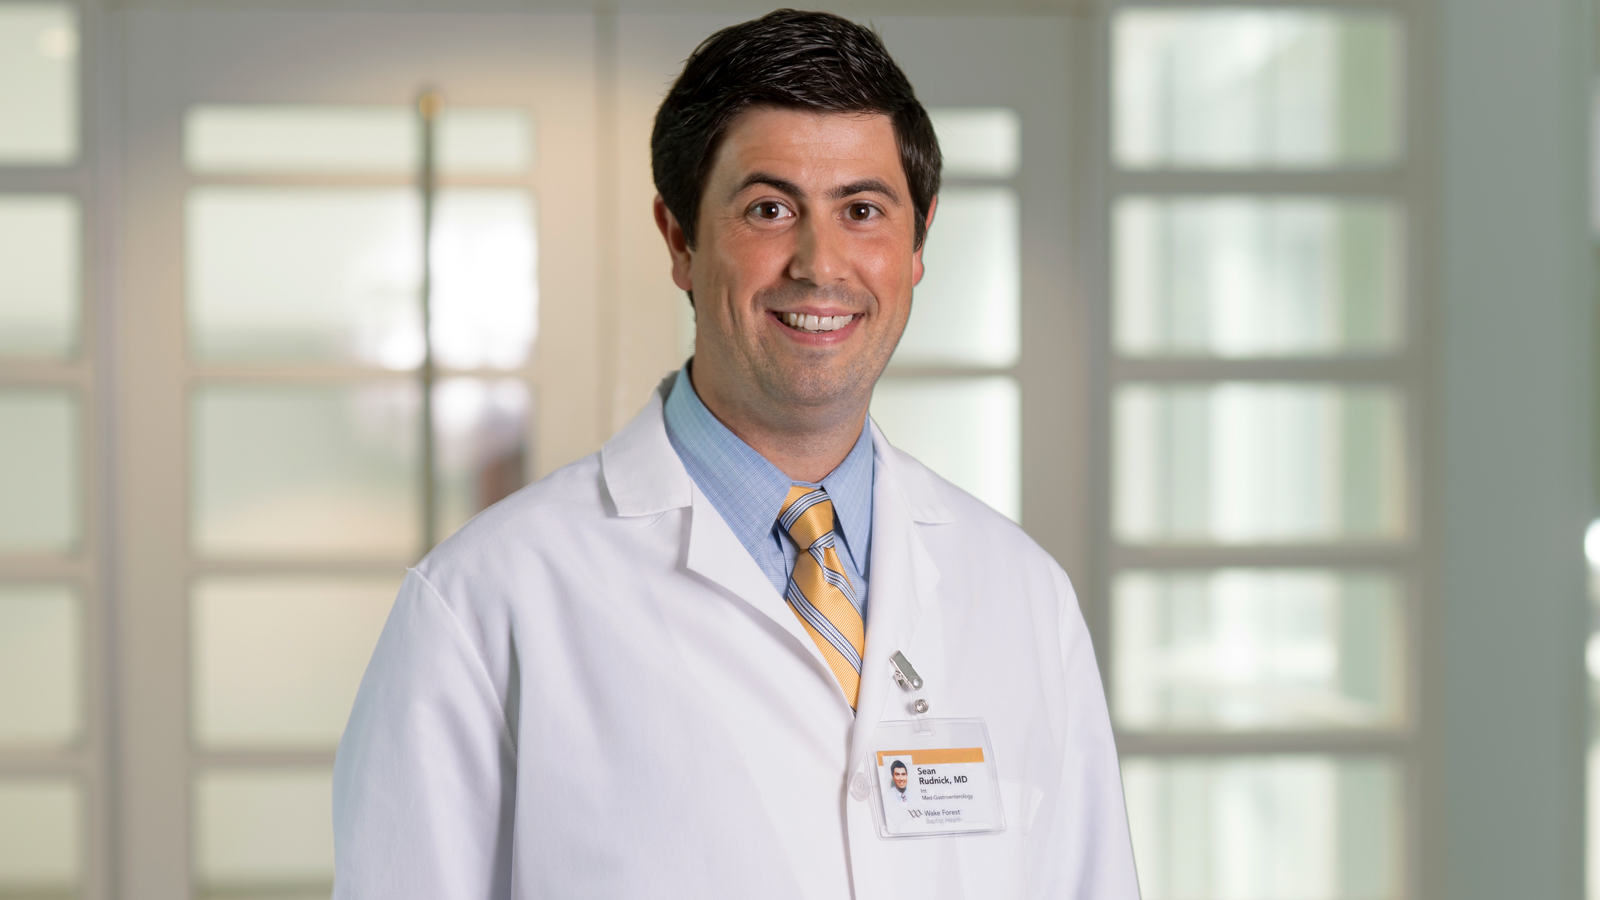 Sean Rudnick, MD